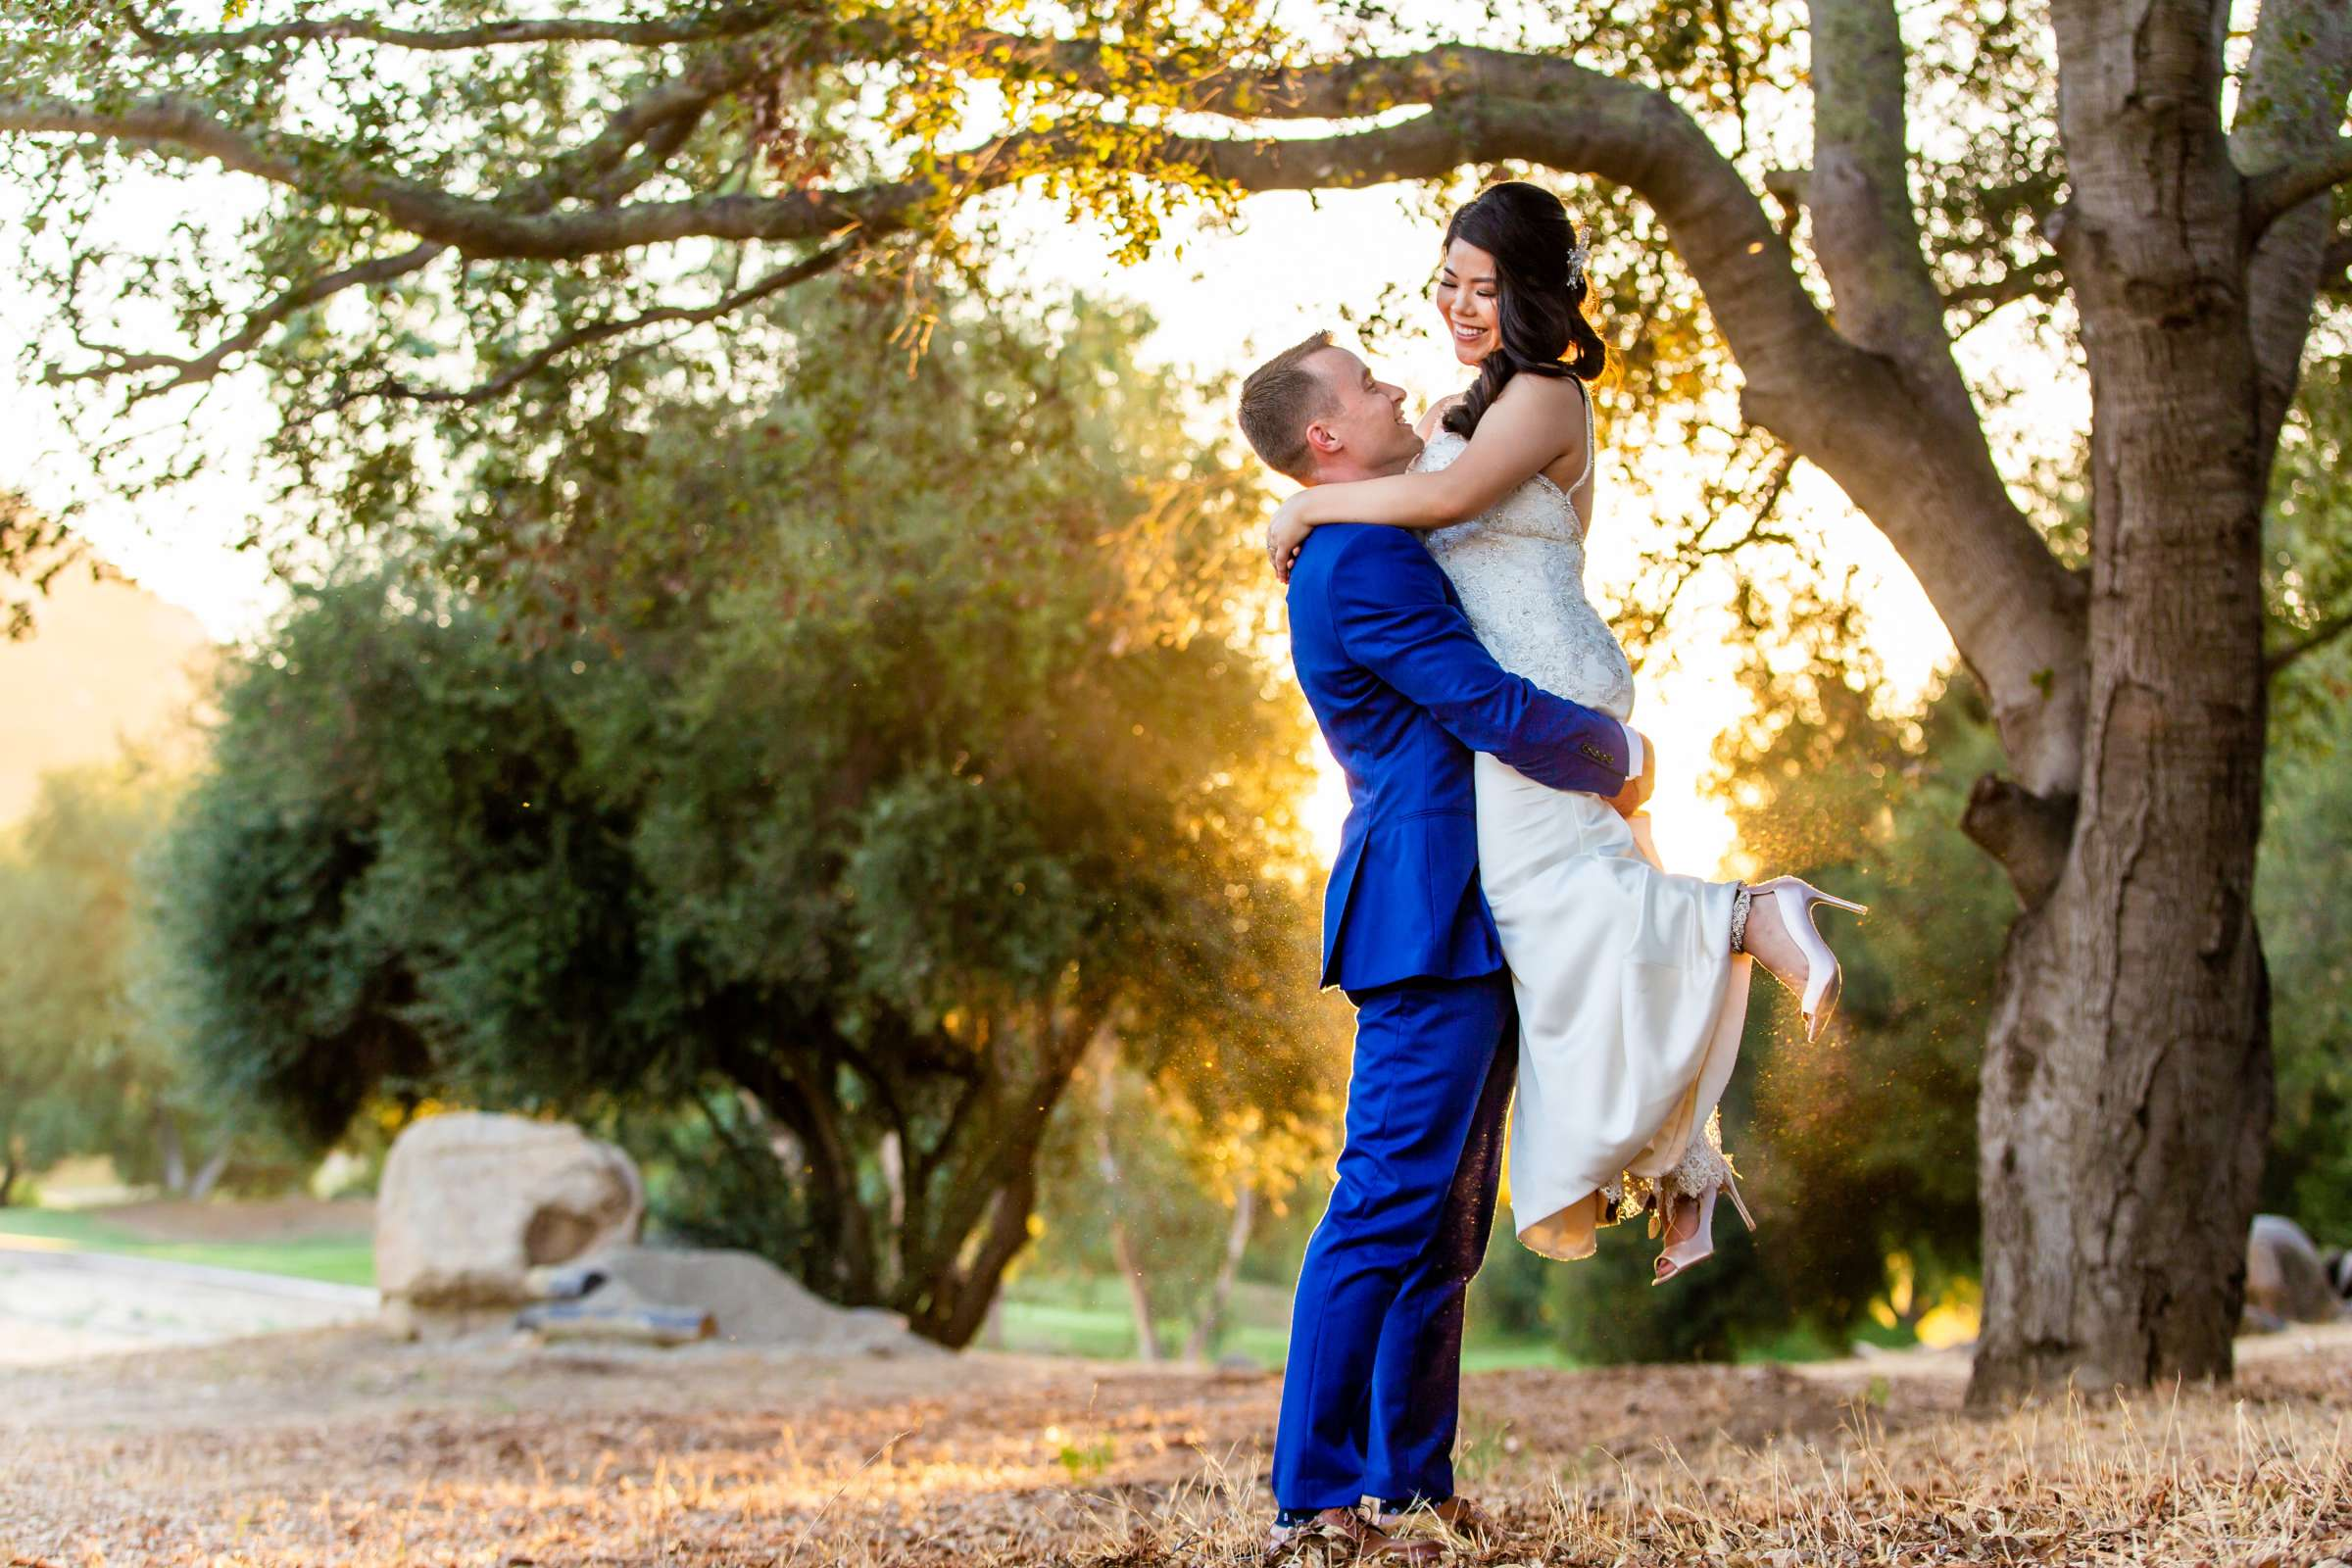 Mt Woodson Castle Wedding coordinated by I Do Weddings, Aya and Jared Wedding Photo #486999 by True Photography